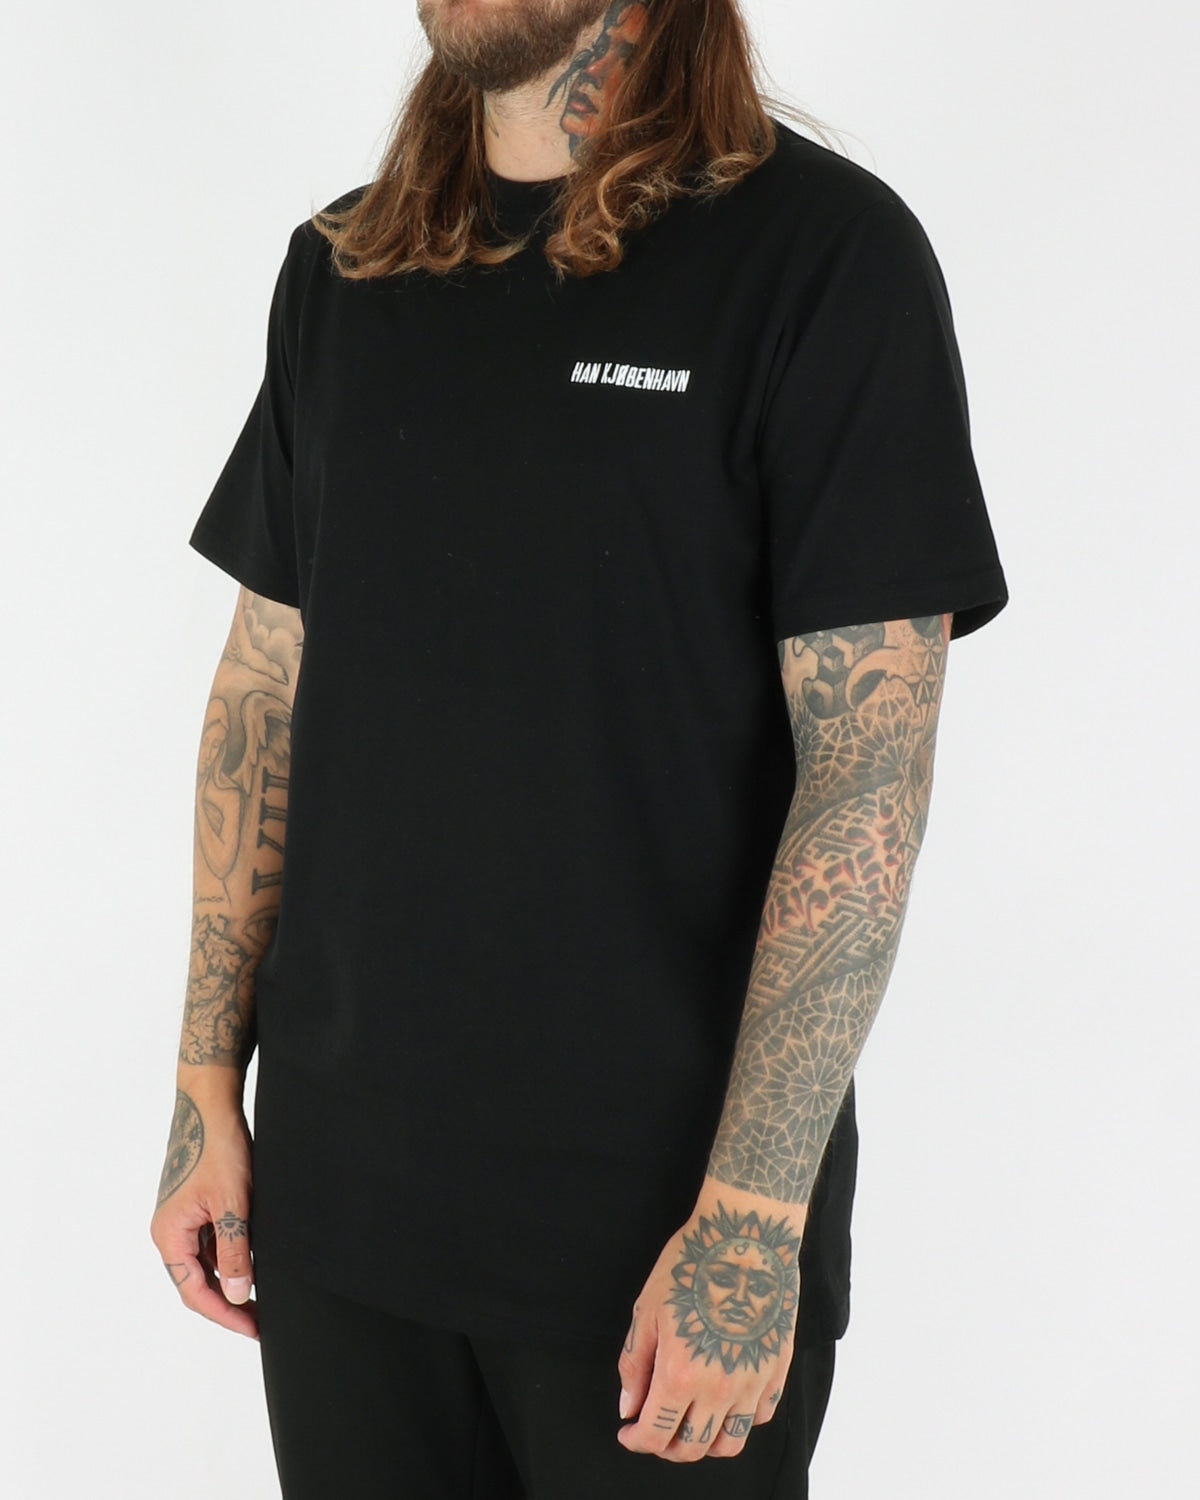 Casual Tee, black chest logo